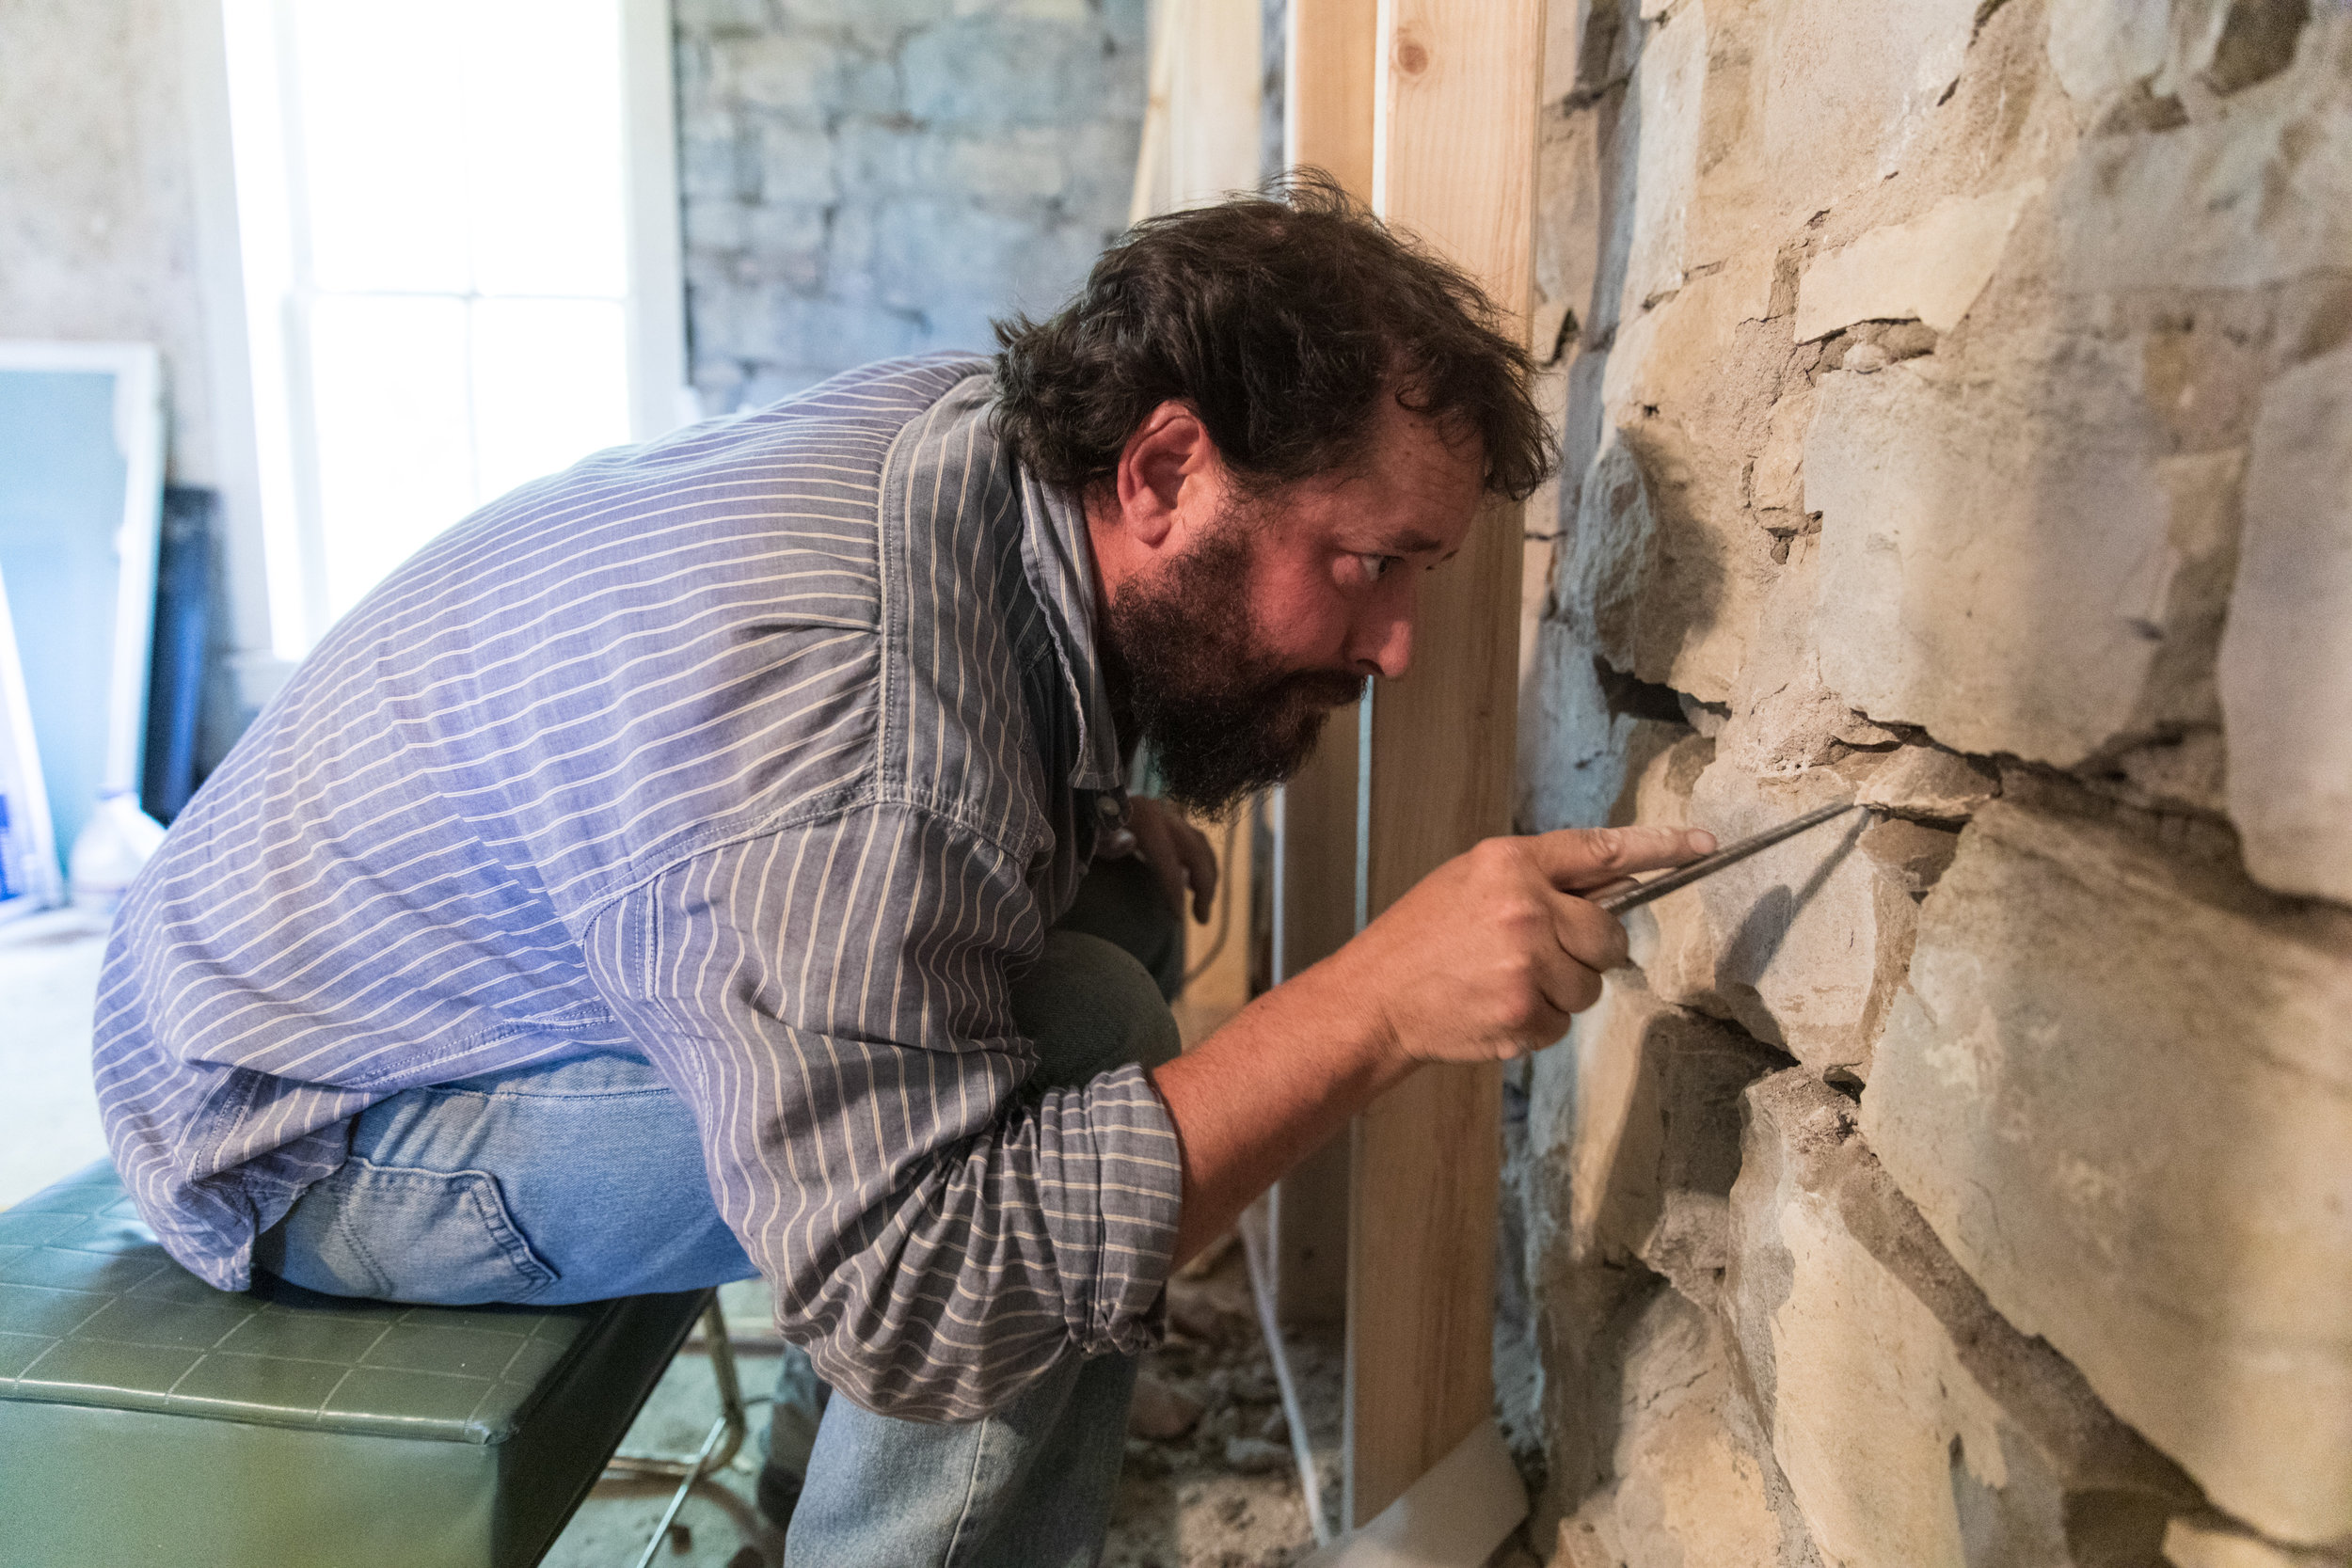 Ben Gilstrap chiseling out the mortar and dirt between stones used to build the ranch headquarters over a hundred years ago.